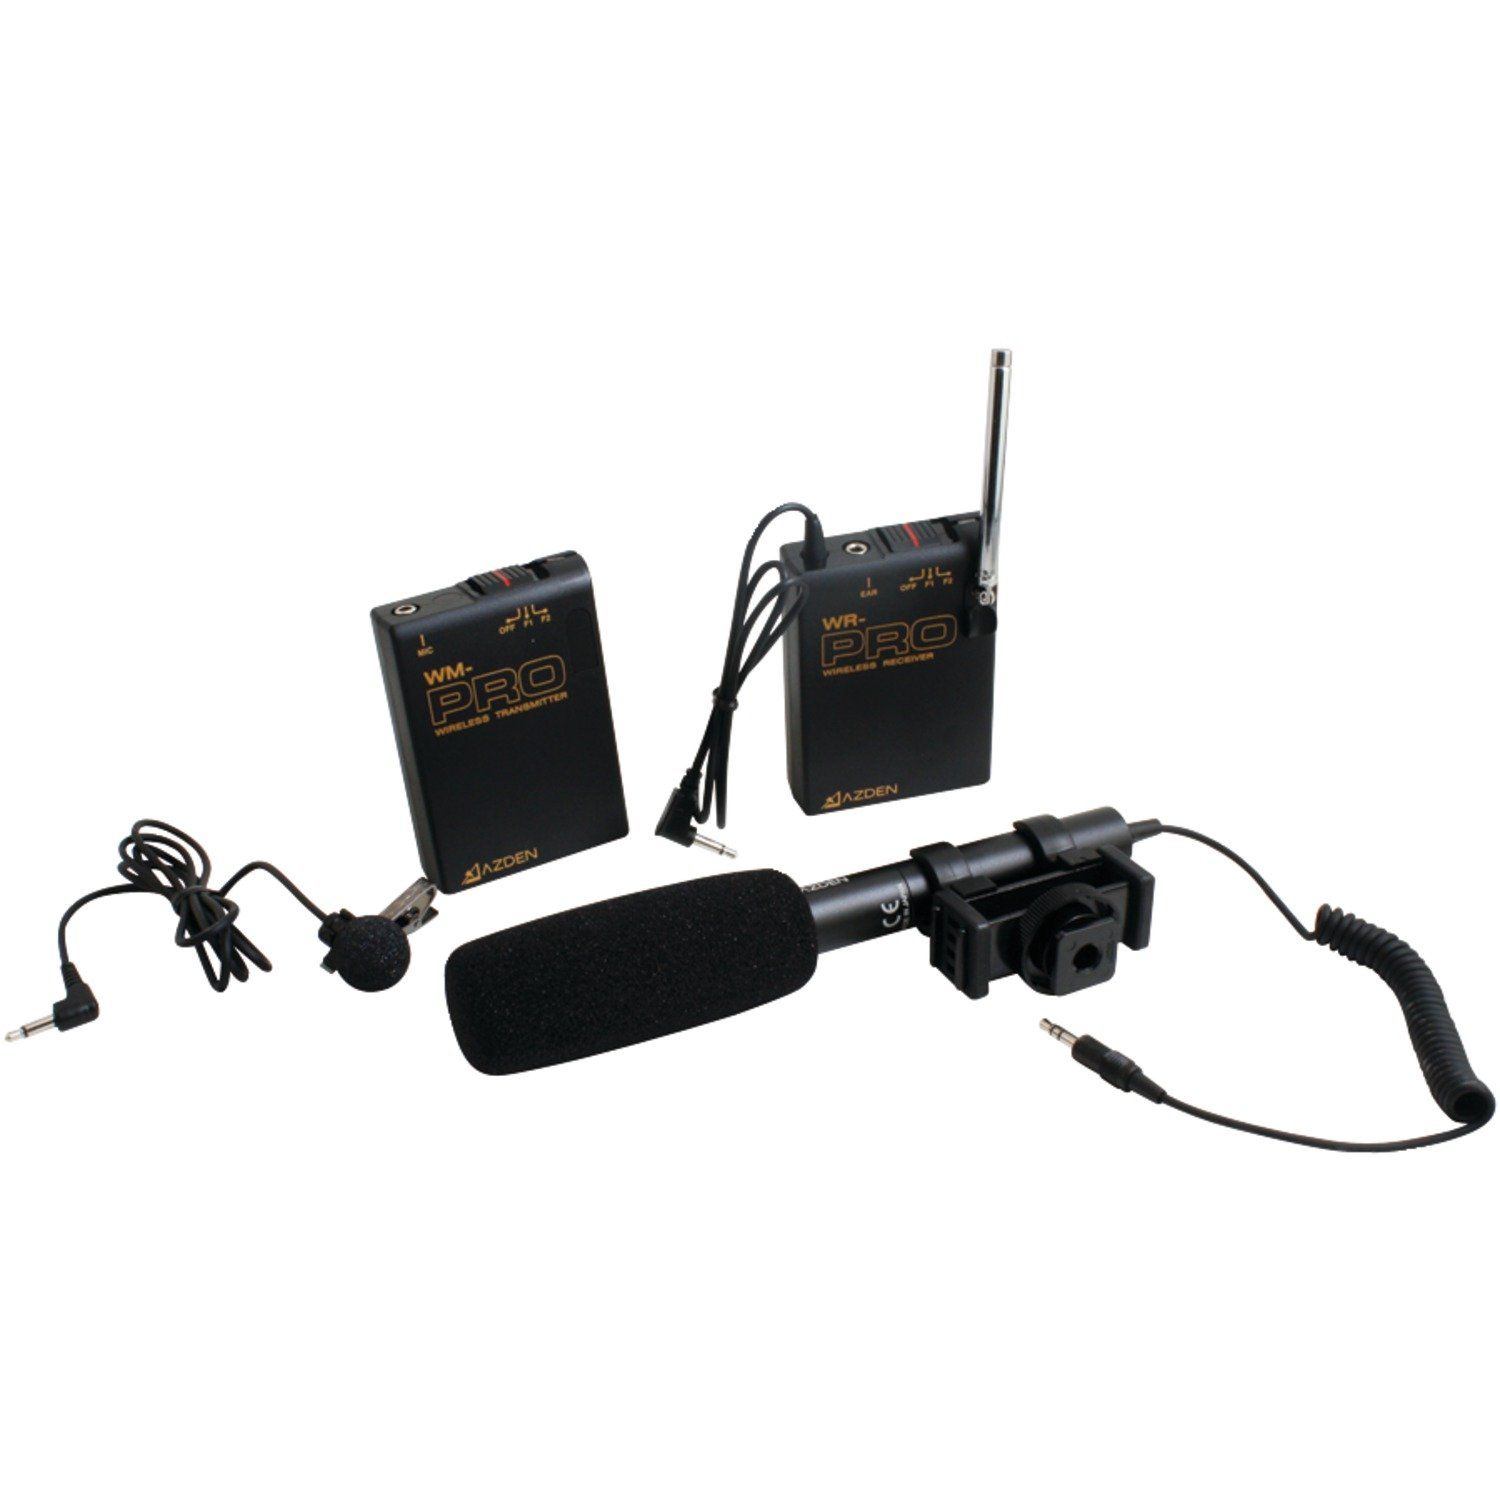 Boom Microphone Kit Microphone Audio Kit For